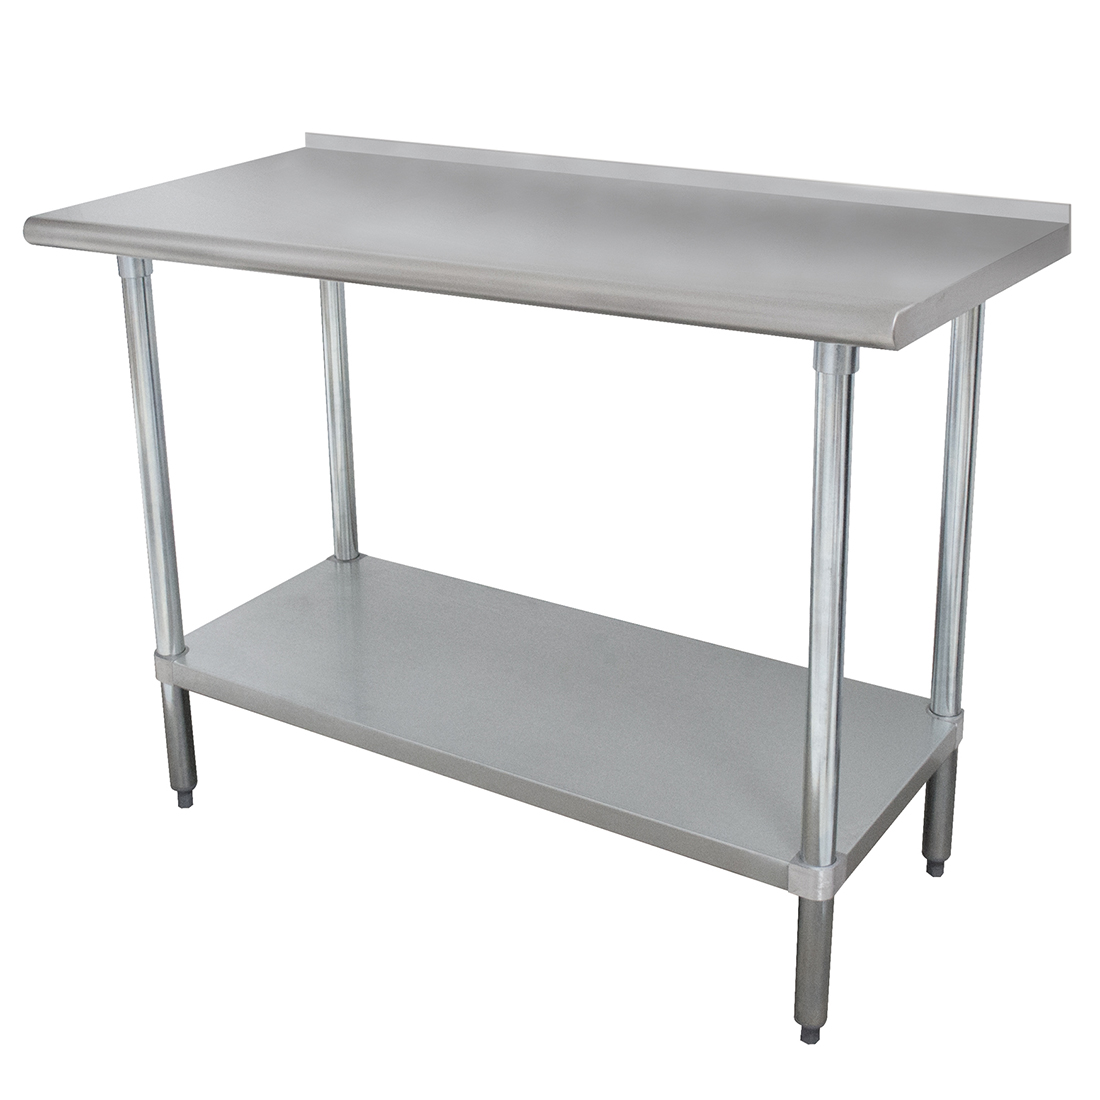 Advance Tabco FMG-306 work table,  63